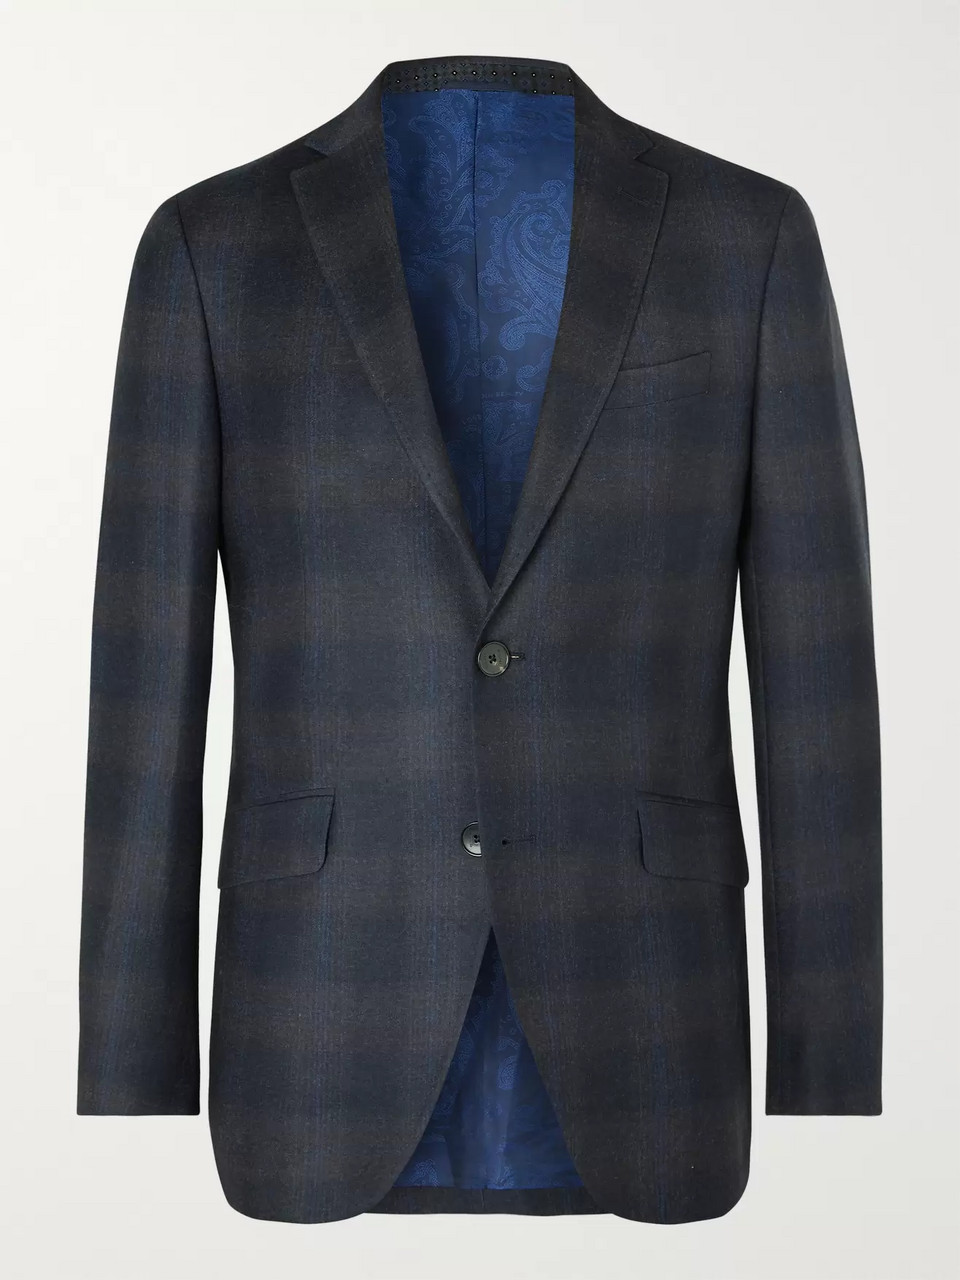 Etro Navy Slim-Fit Checked Wool Suit Jacket